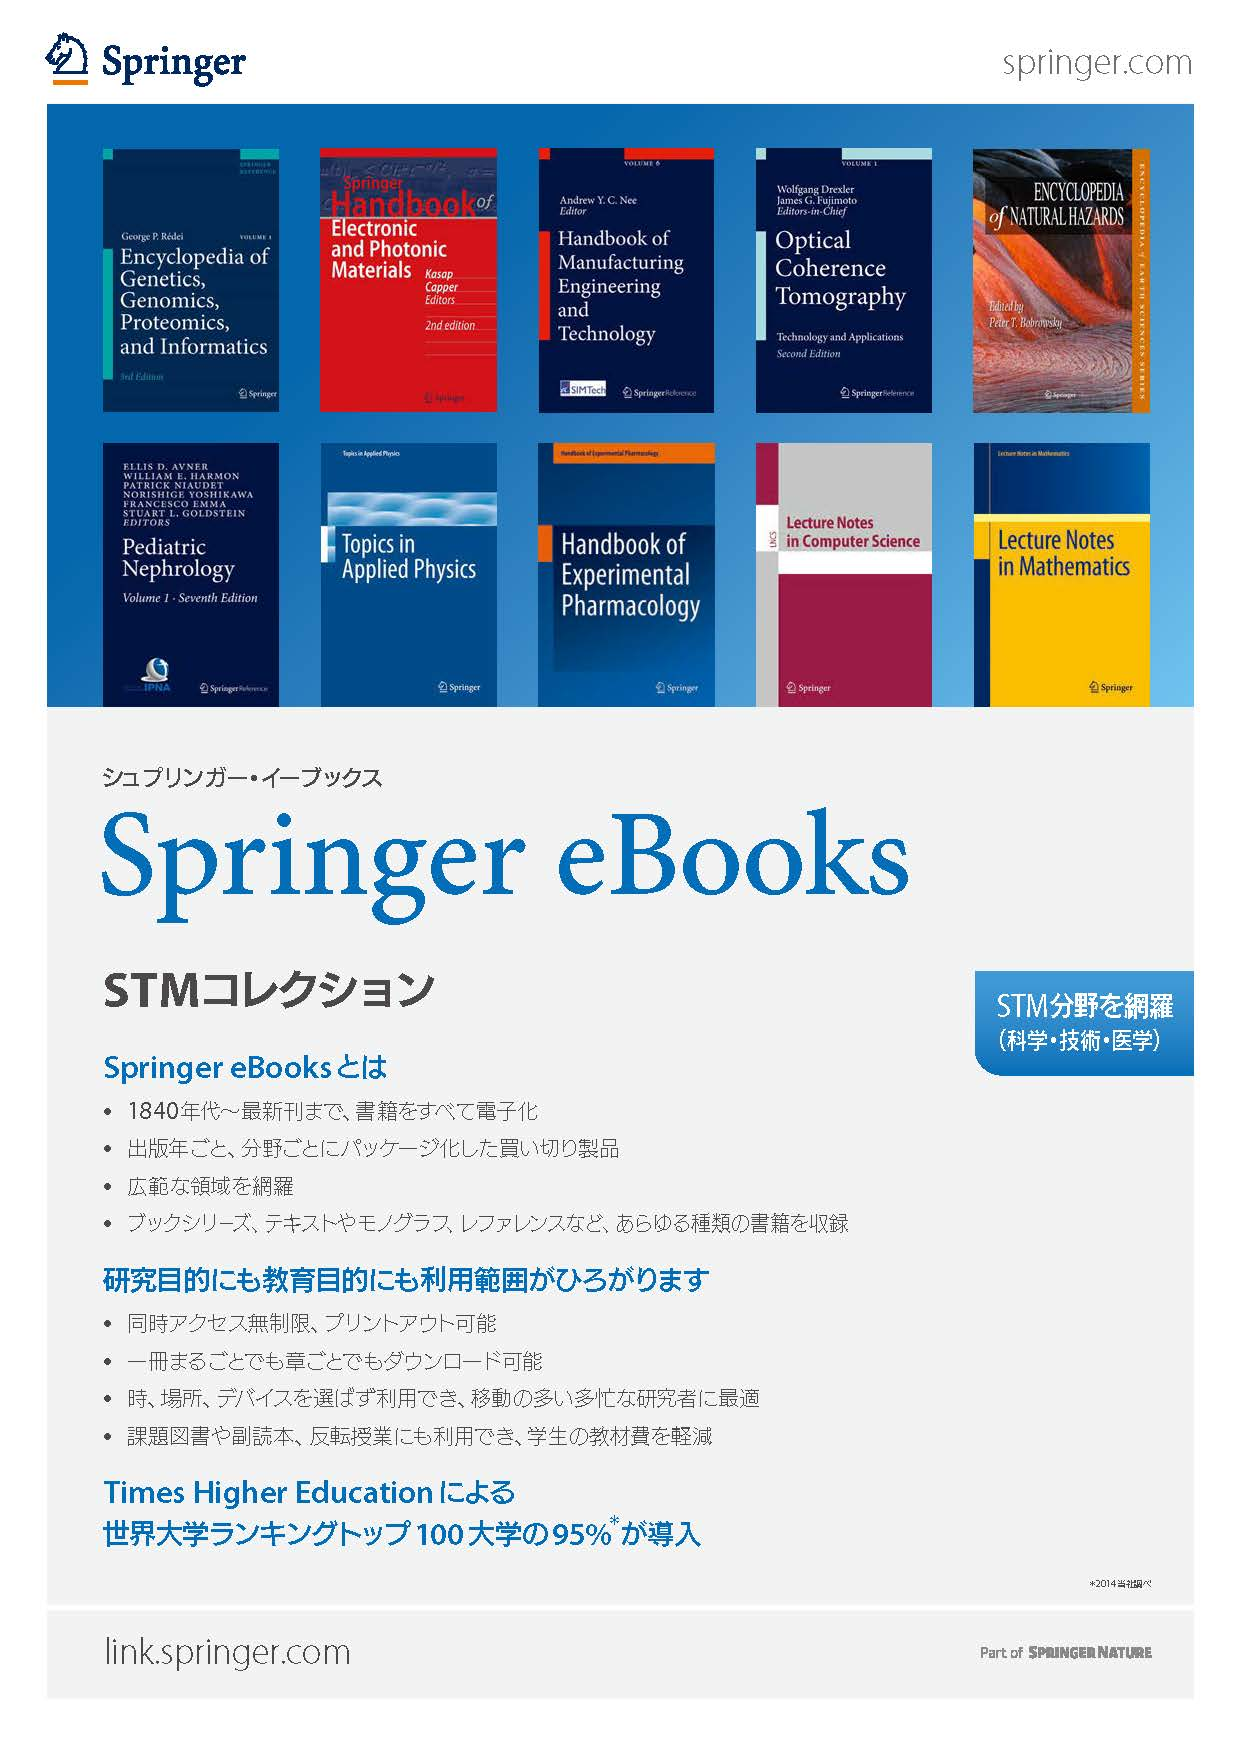 Springer eBooks STM Collectionパンフレット